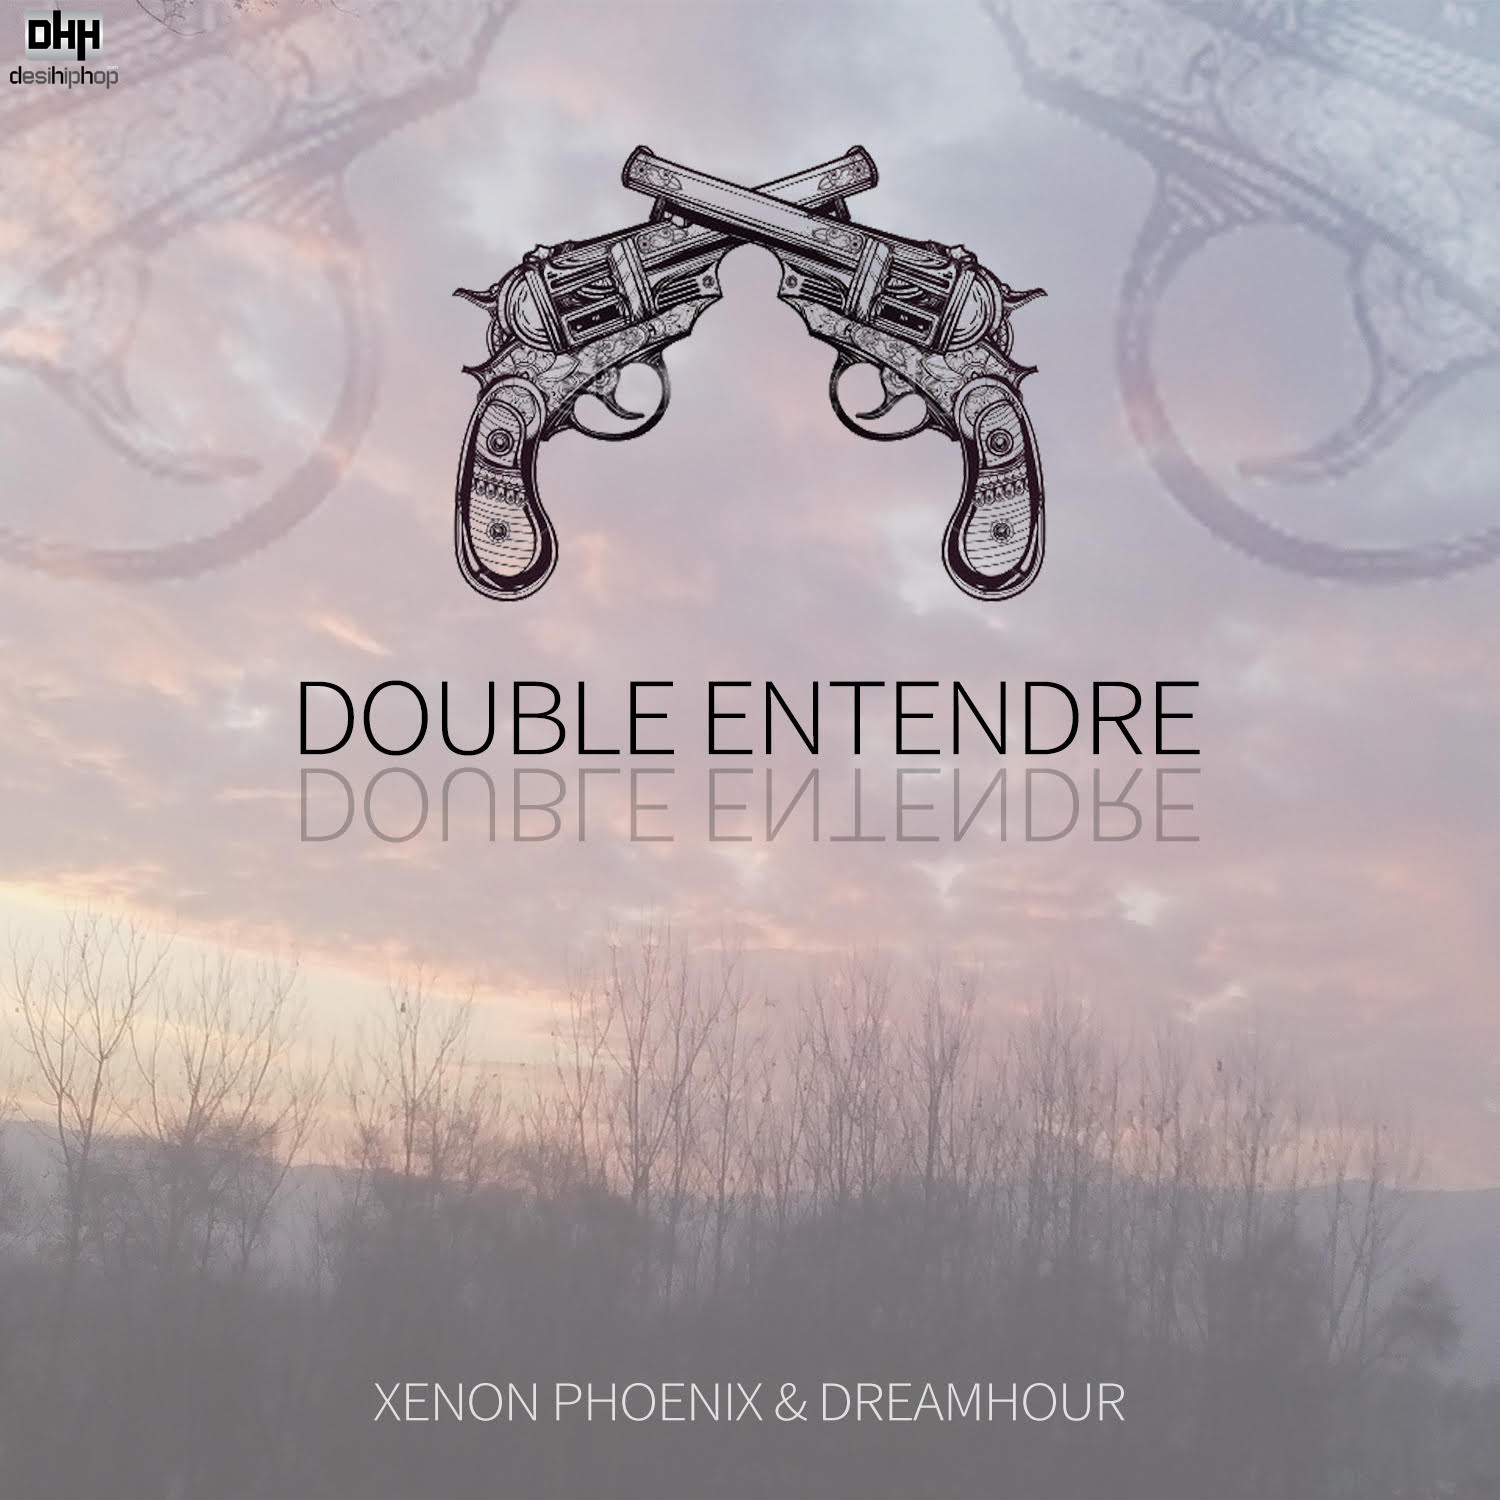 xenon phoenix dreamhour double entendre interview